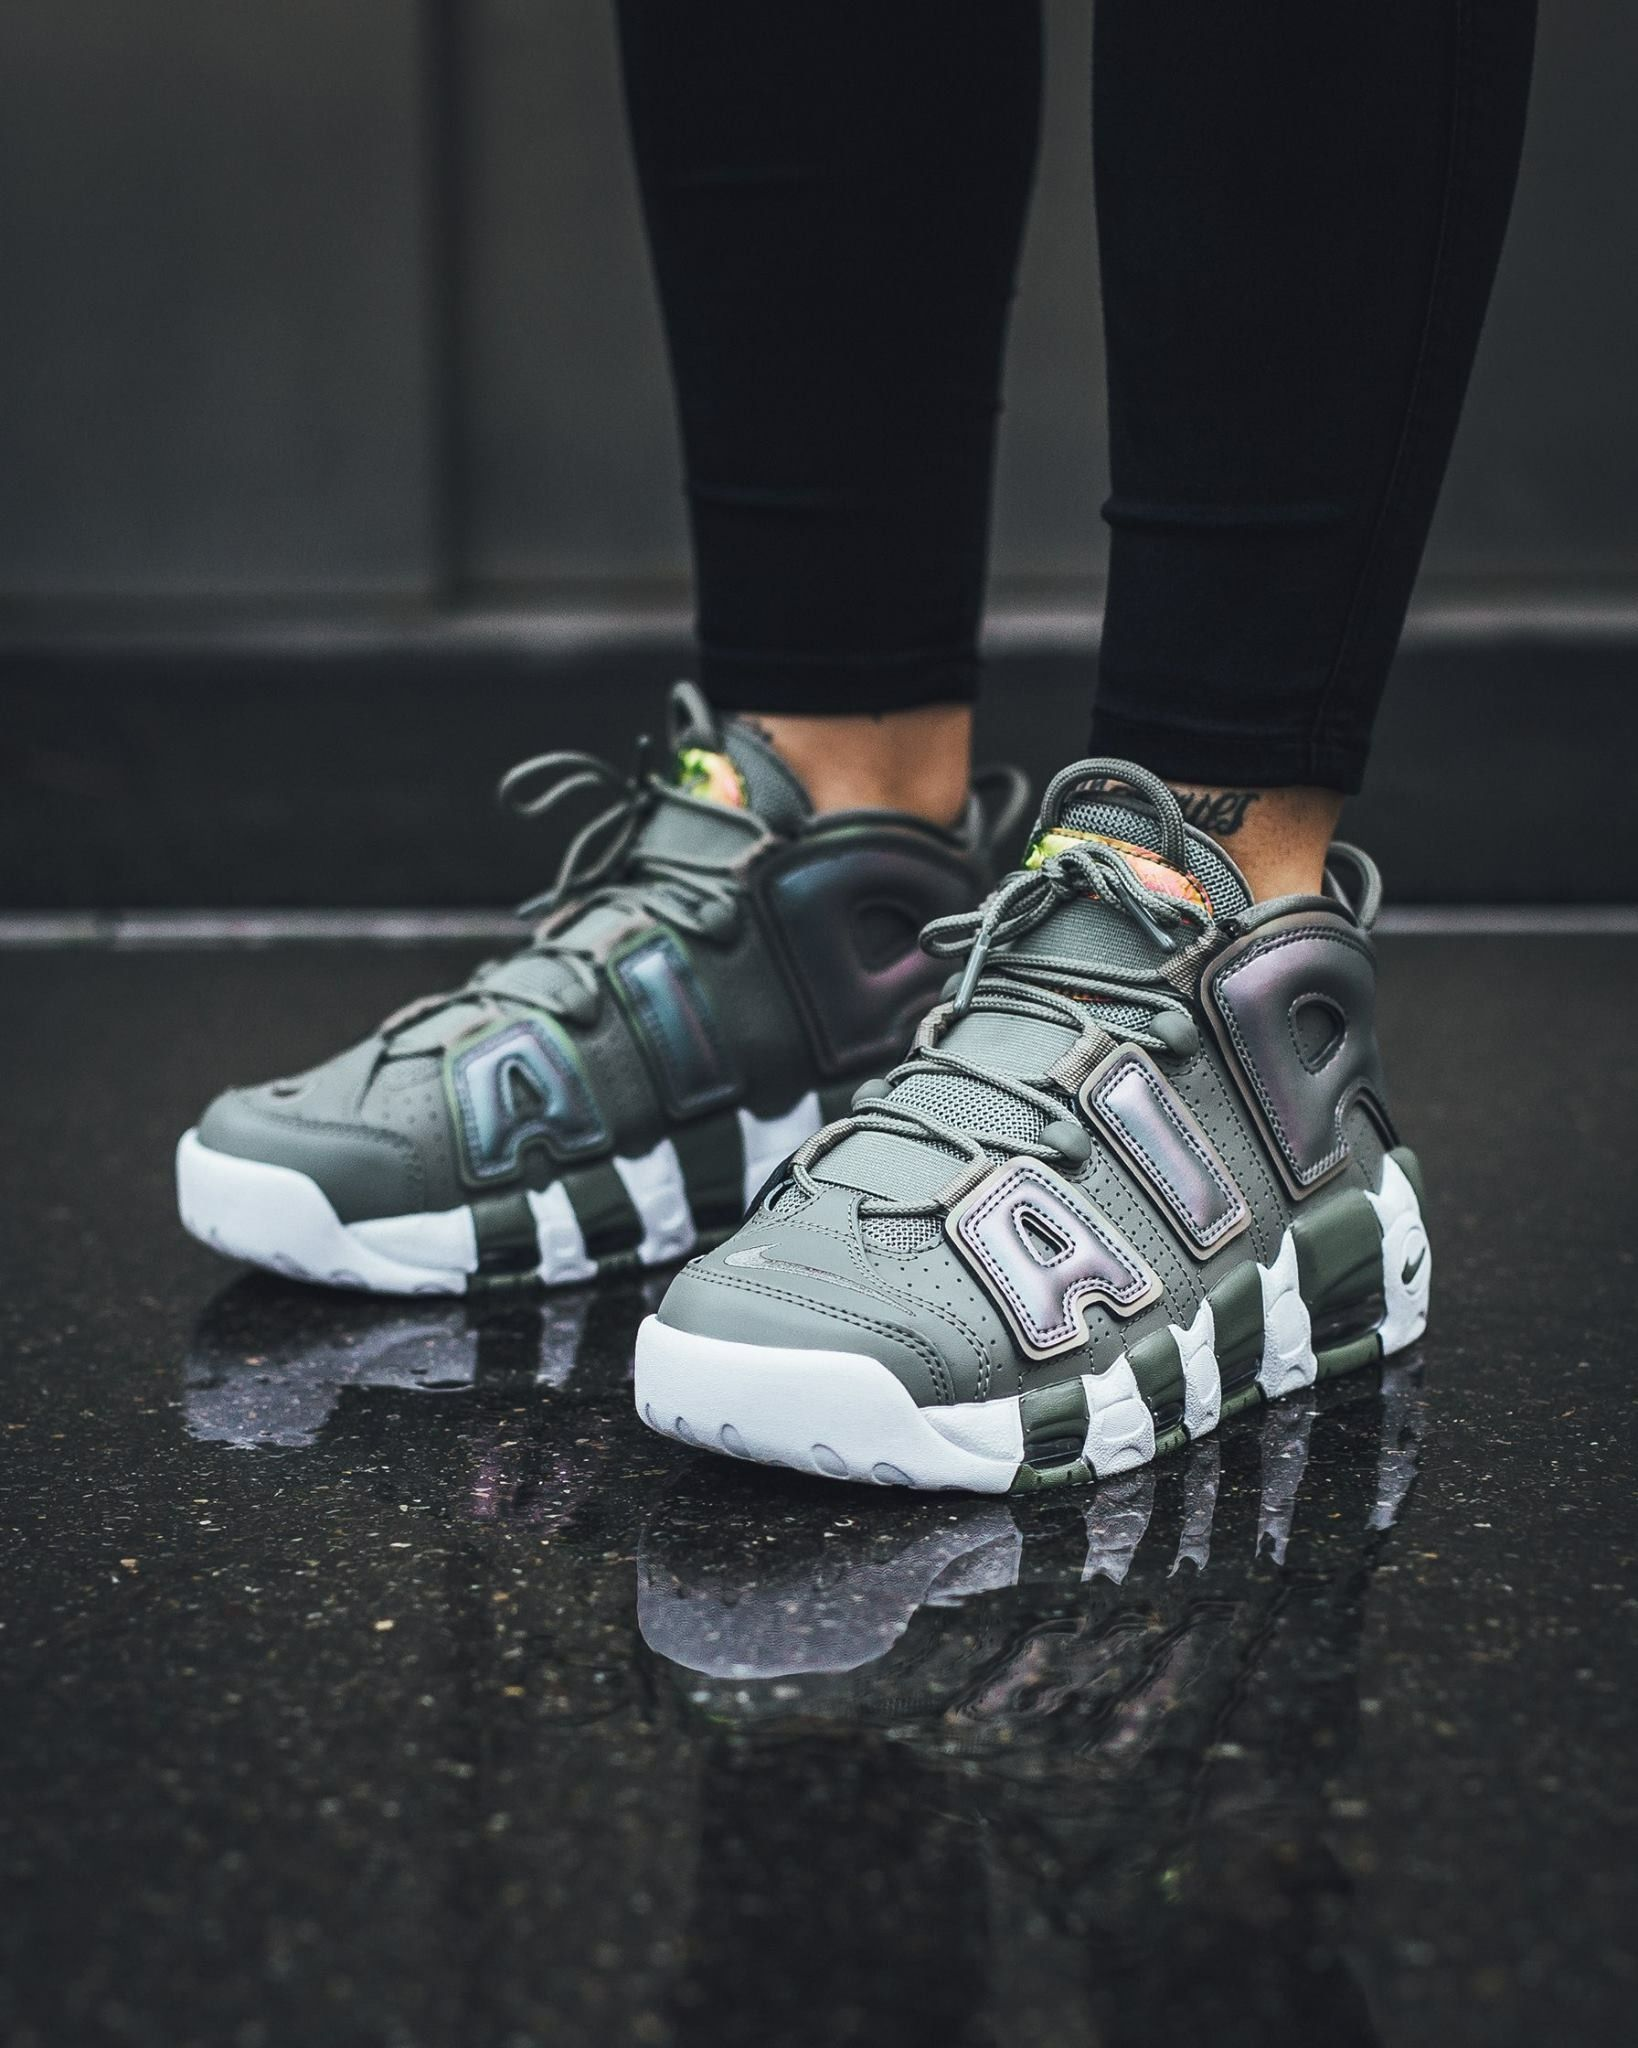 fdf559dfa1 Nike Air More Uptempo | Kicks in 2019 | Sneaker boots, Shoes, Adidas ...